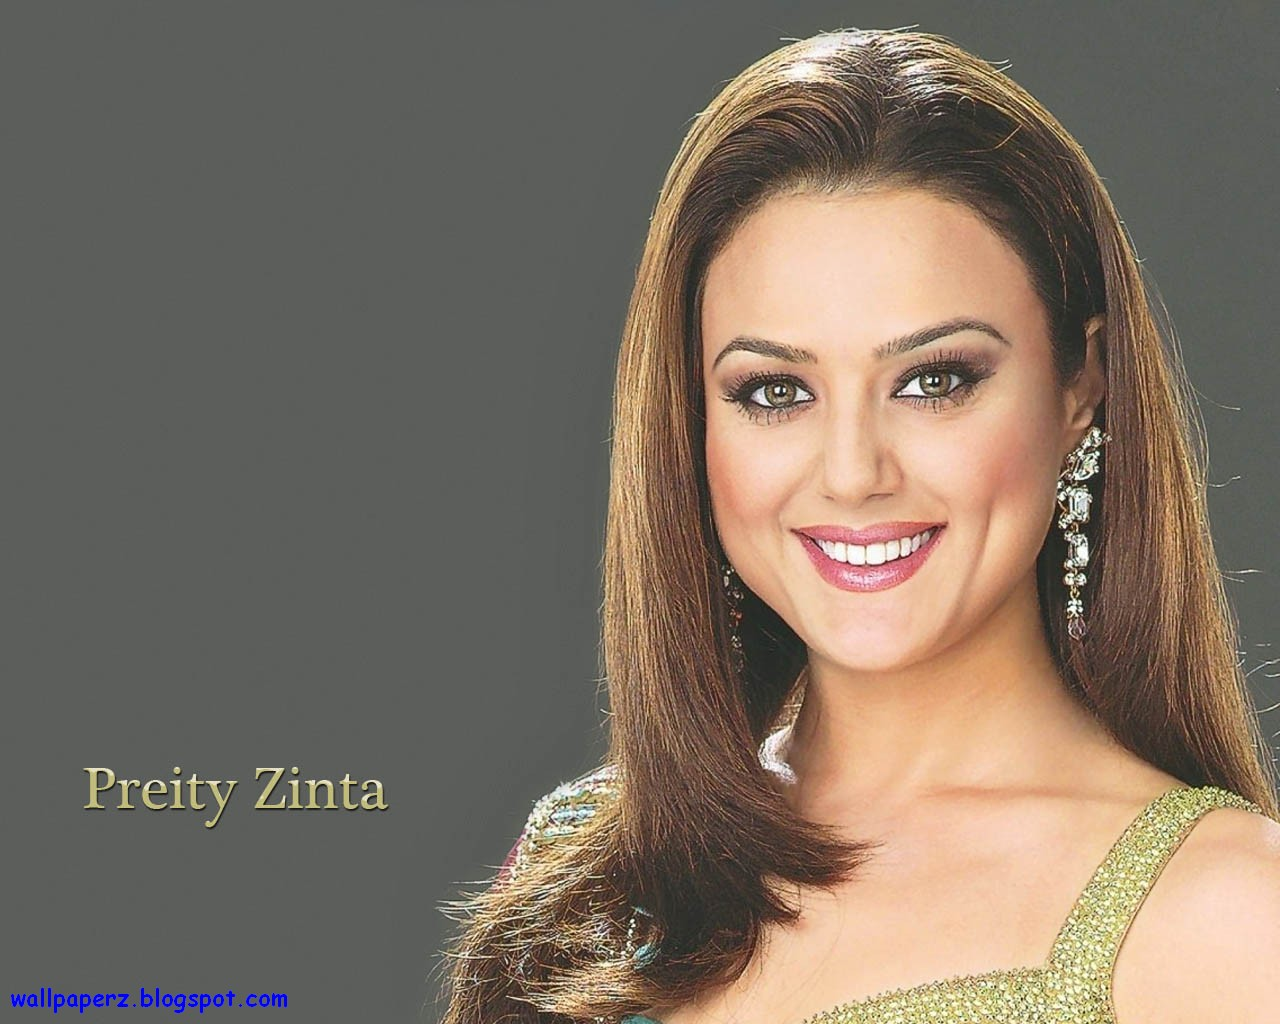 http://1.bp.blogspot.com/-wB4UlxjYnsA/T_Tkcn2JDKI/AAAAAAAABHA/Oe0GWwQSLvw/s1600/preity+zinta+wallpapers+-+latest+stills+-+wallpaperz.blogspot.com+(6).jpg